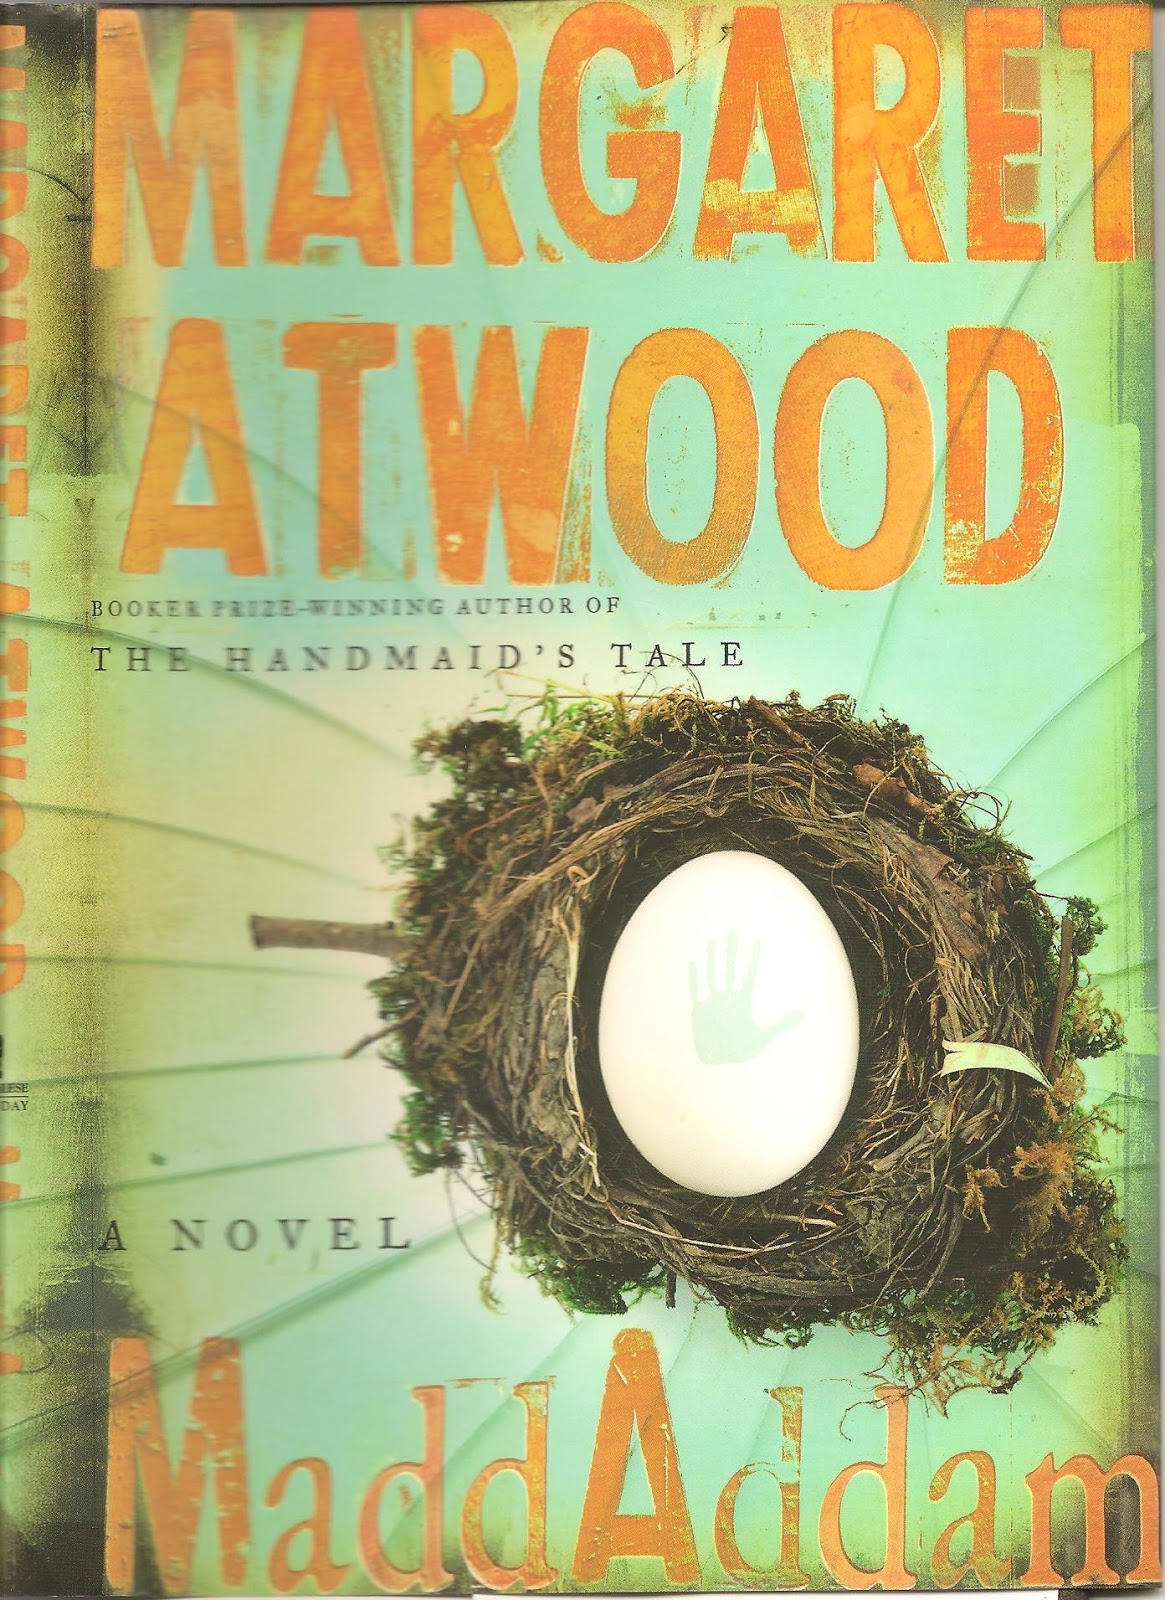 an overview of the works styles and themes of margaret atwood Margaret atwood surfacing essay  an examination the life and works of margaret atwood  in the novel the handmaids tale by margaret atwood the themes.